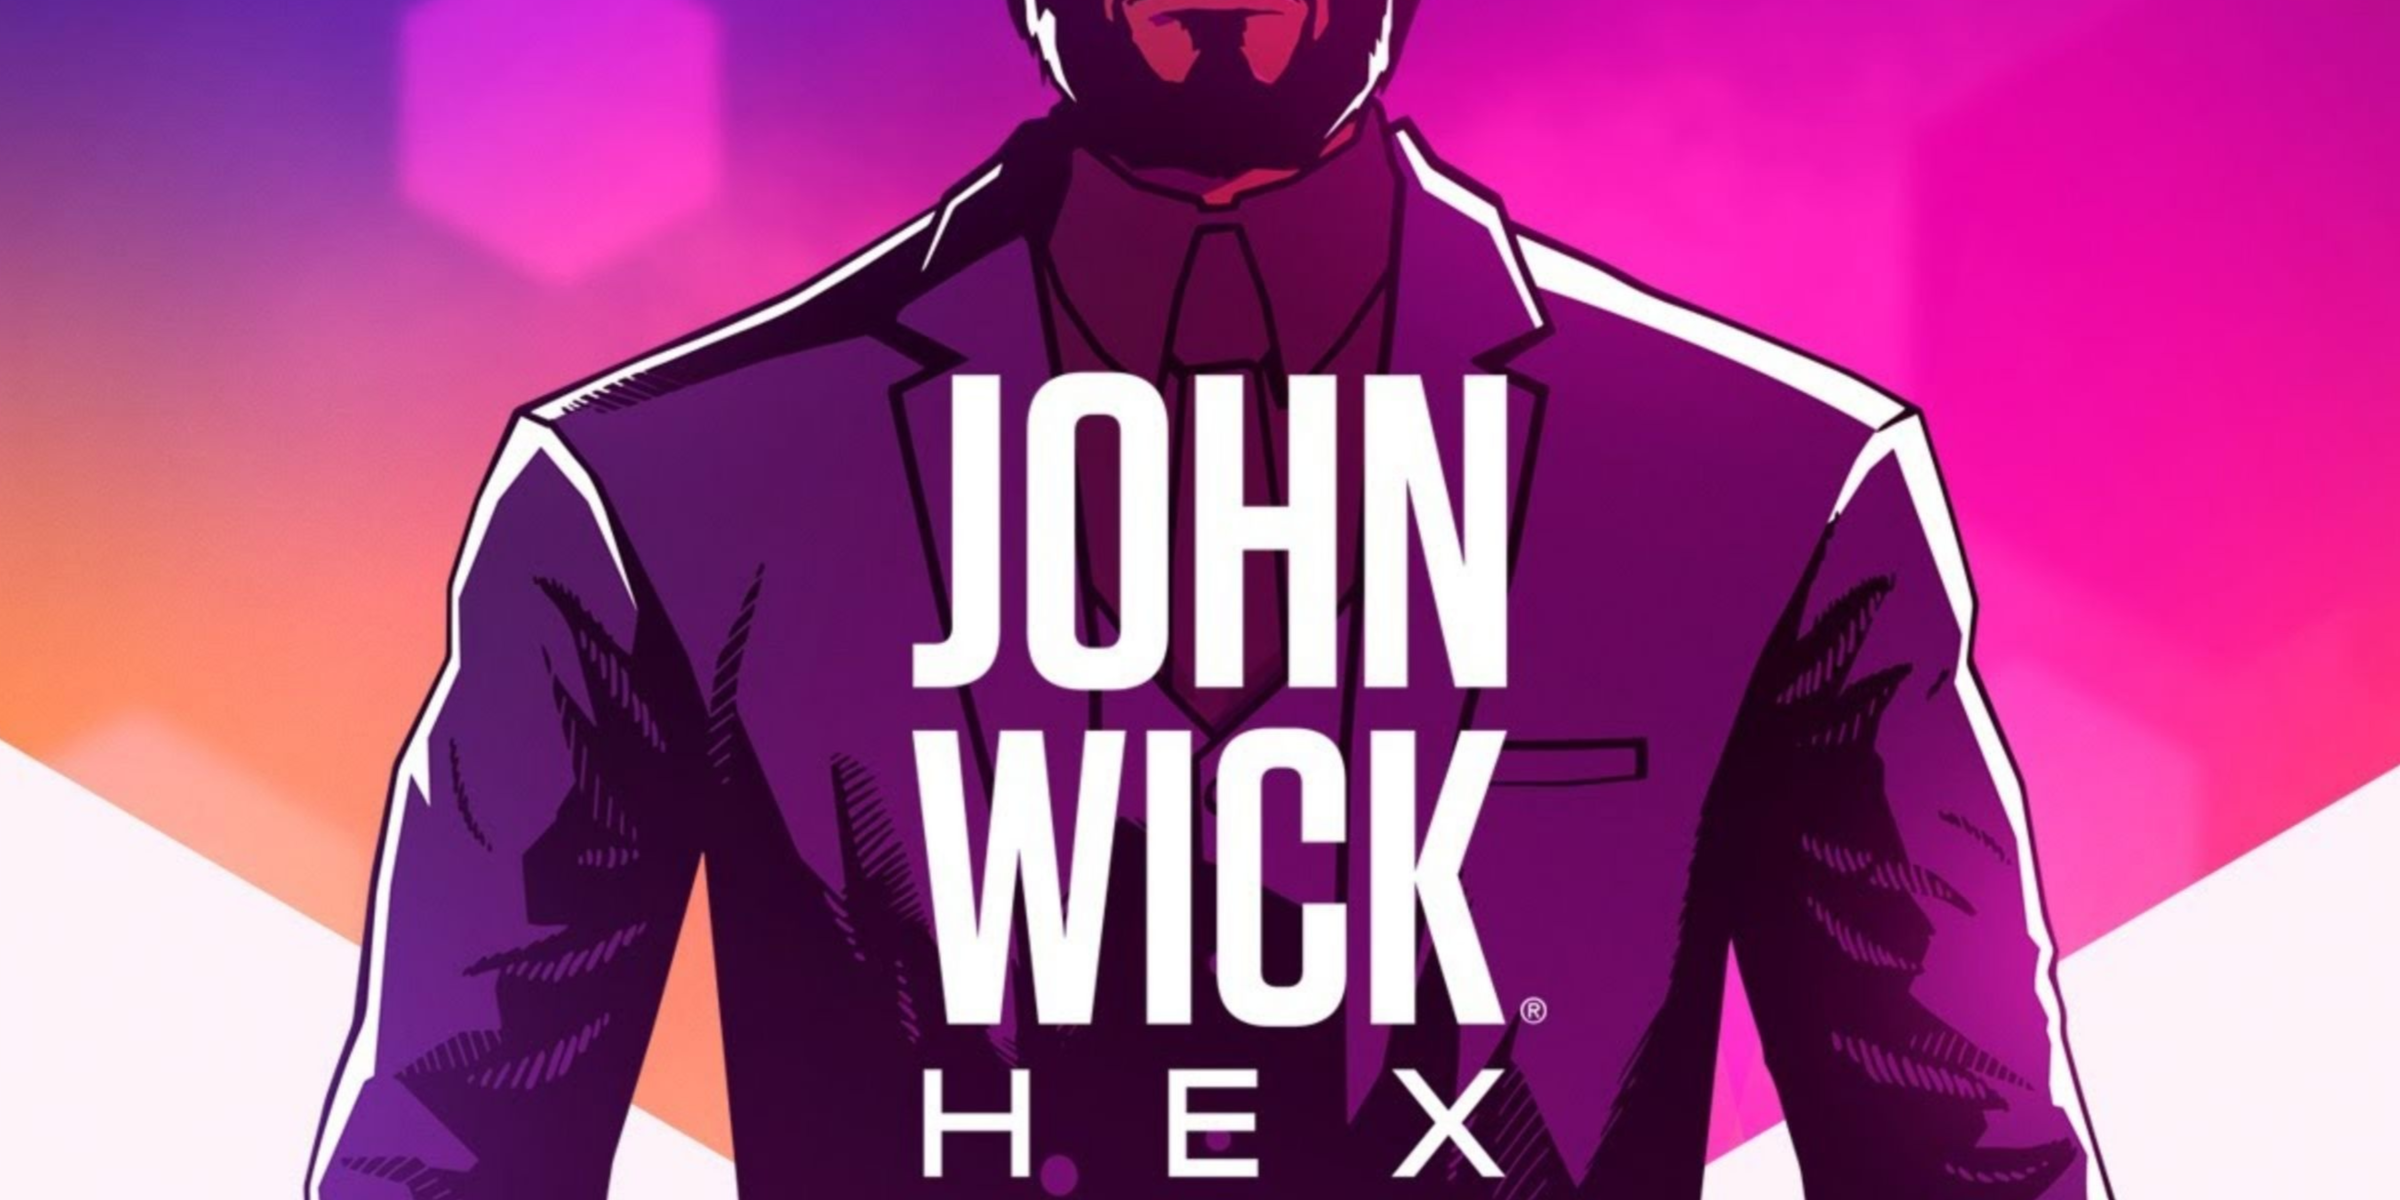 John Wick: Hex v1.03 Free Download